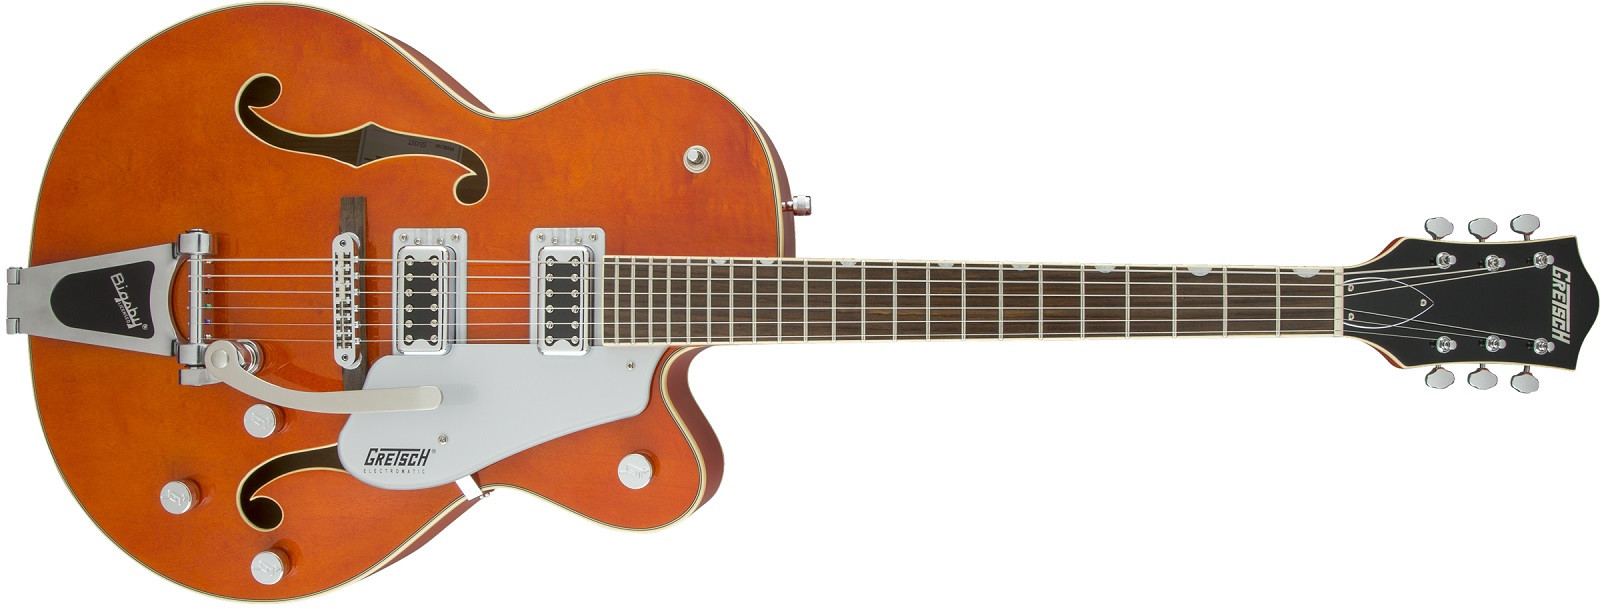 GRETSCH-G5420T-ELECTROMATIC-HOLLOWBODY-ORANGE-STAIN-2506011512-sku-16201